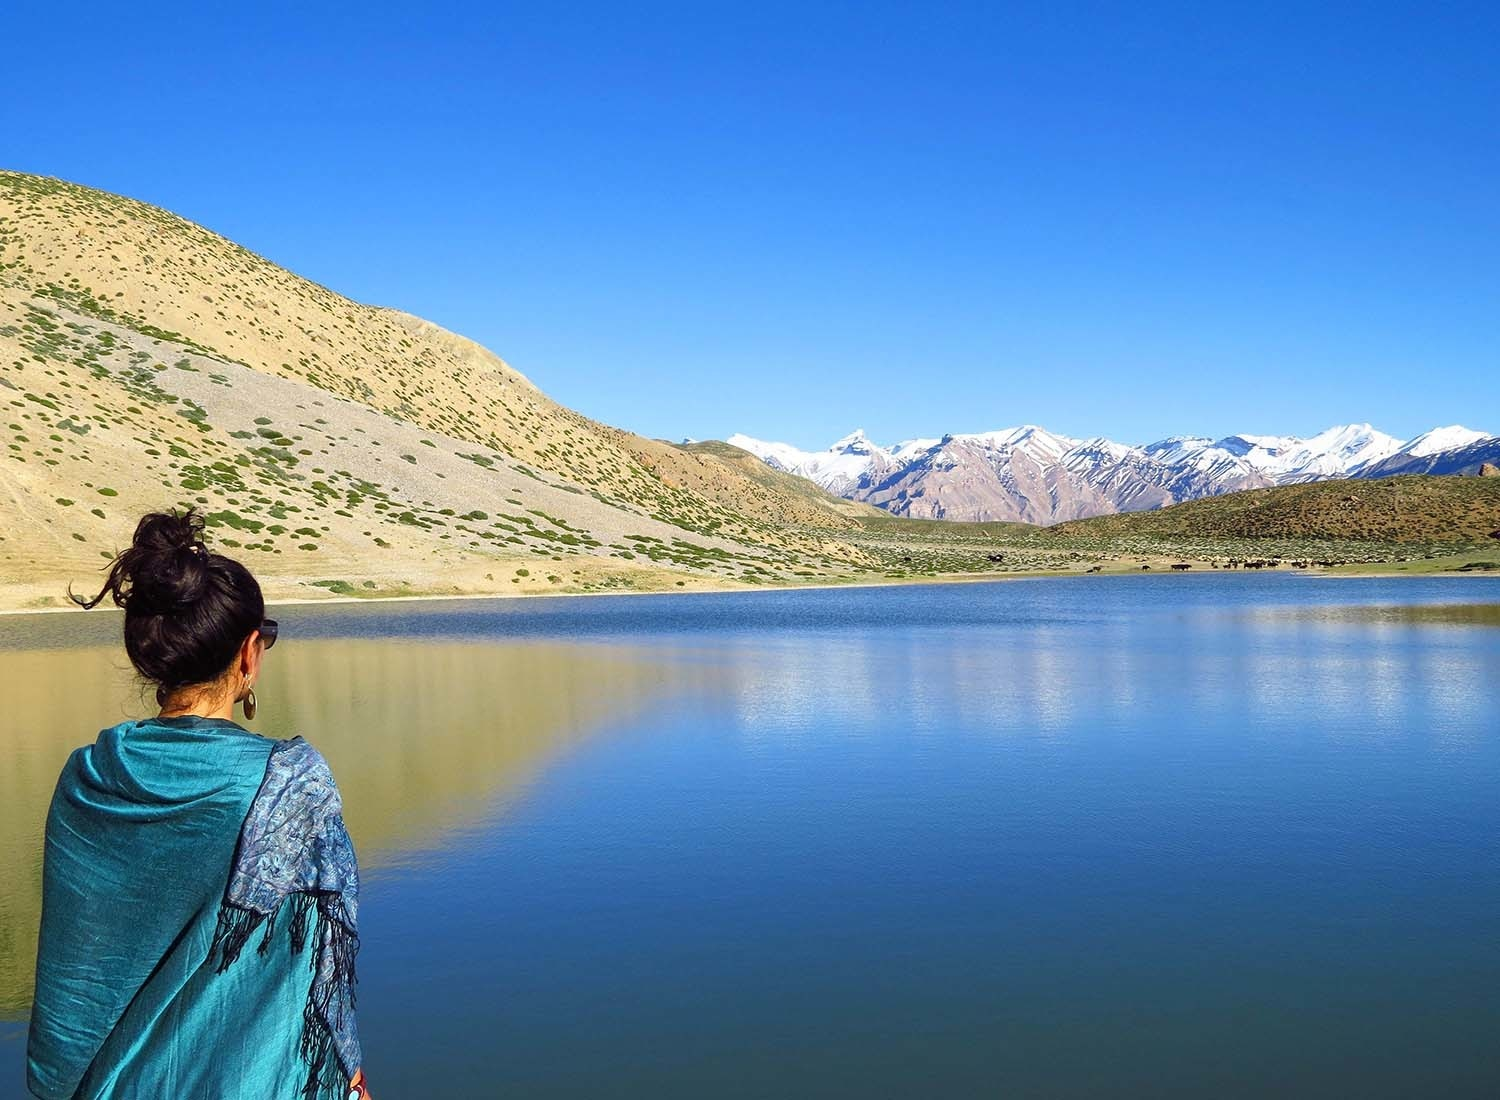 Dhankar lake, Spiti Valley.